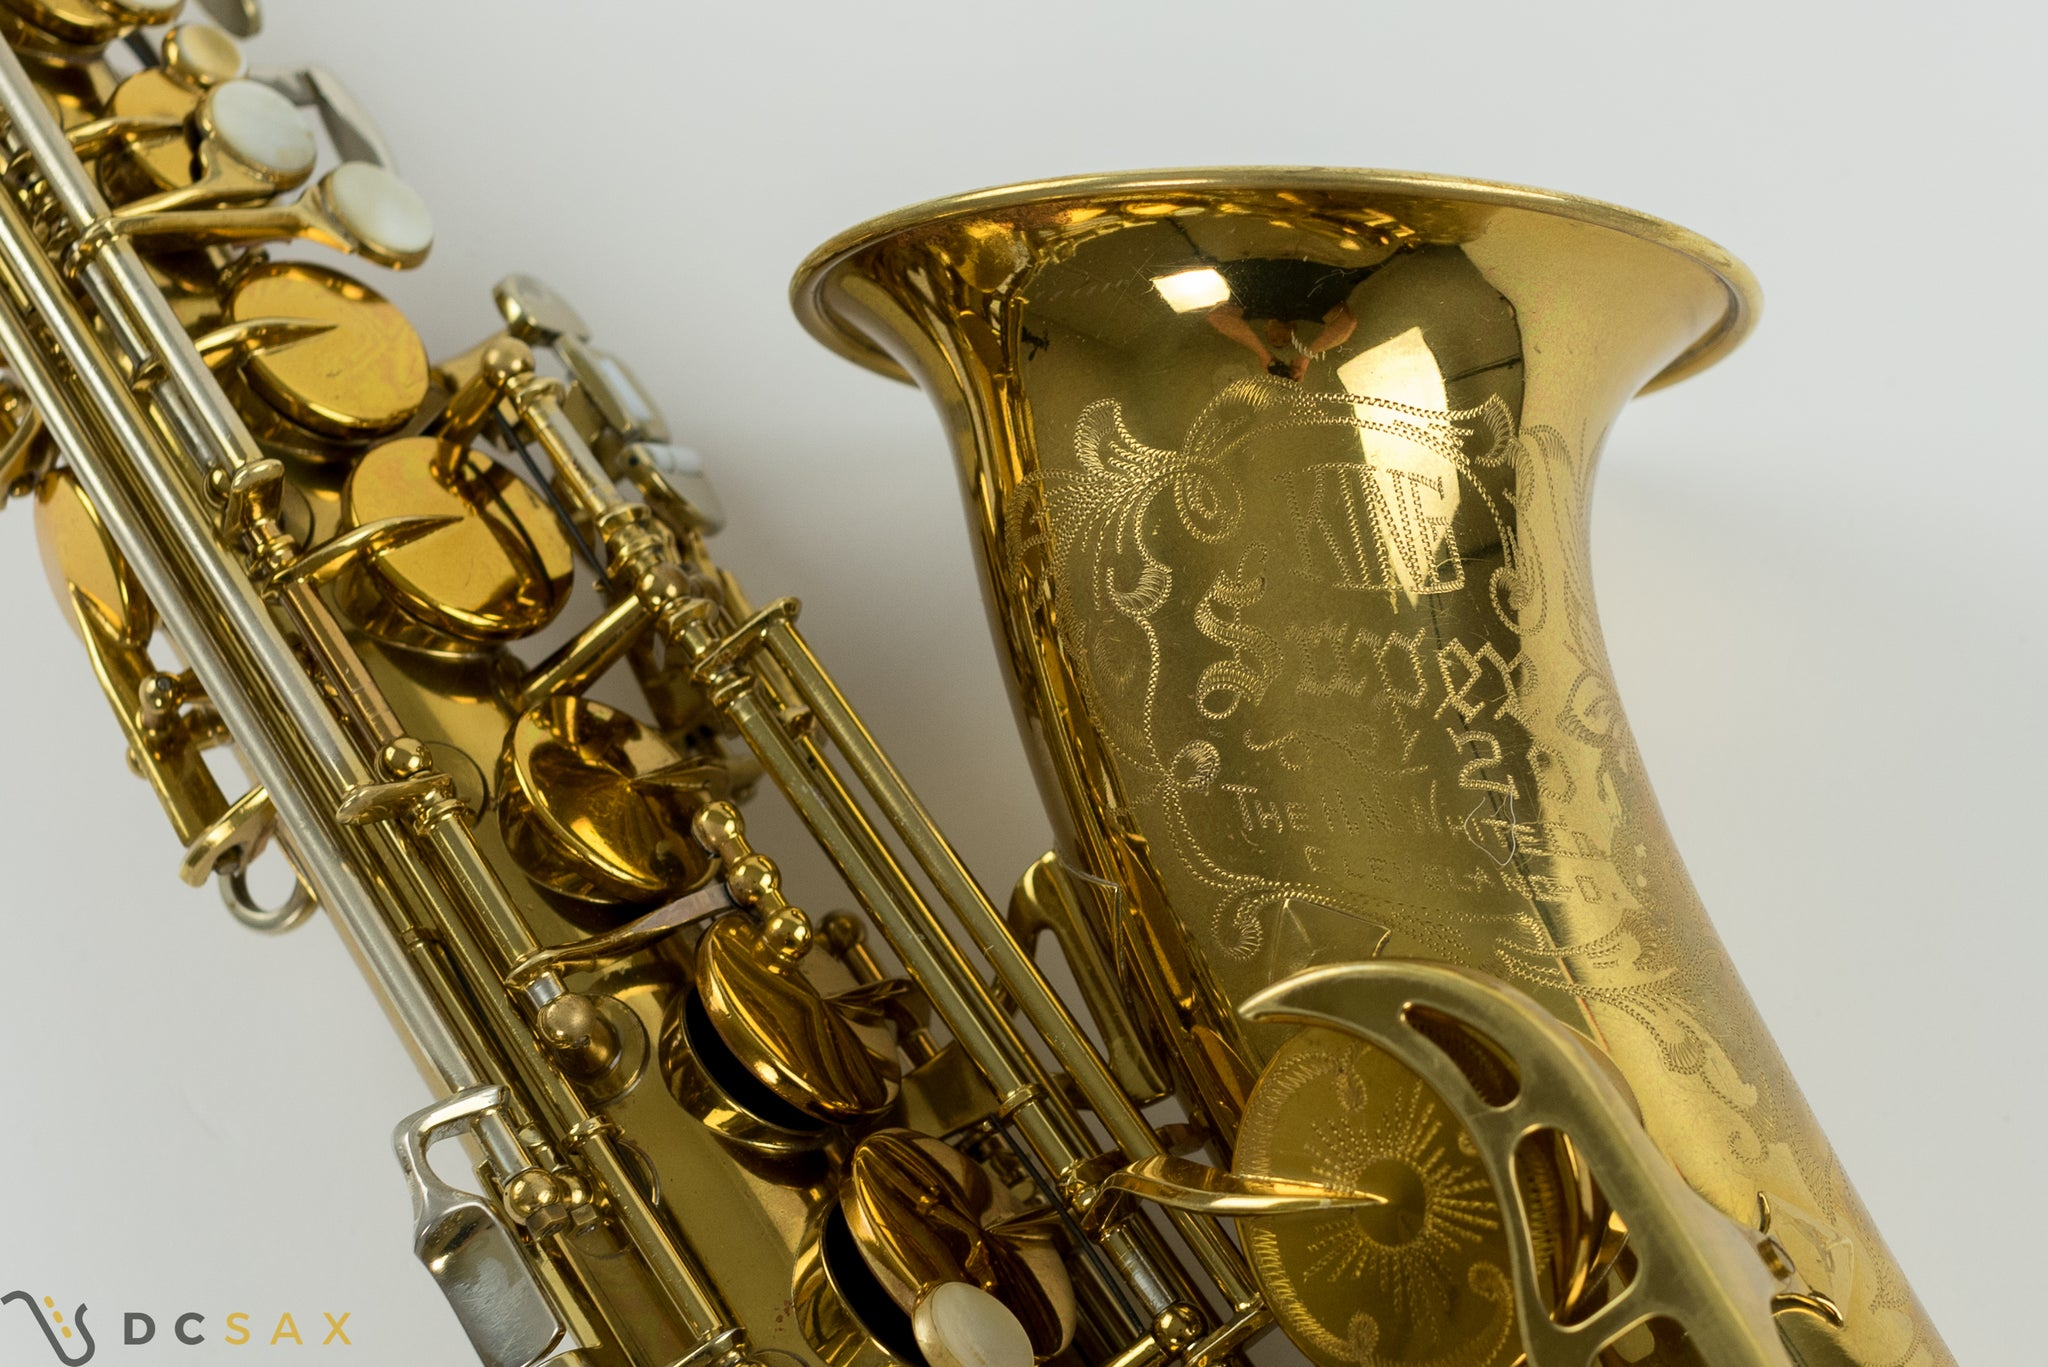 1957 King Super 20 Alto Saxophone, 95% Original Lacquer, Cleveland Era, Fresh Overhaul